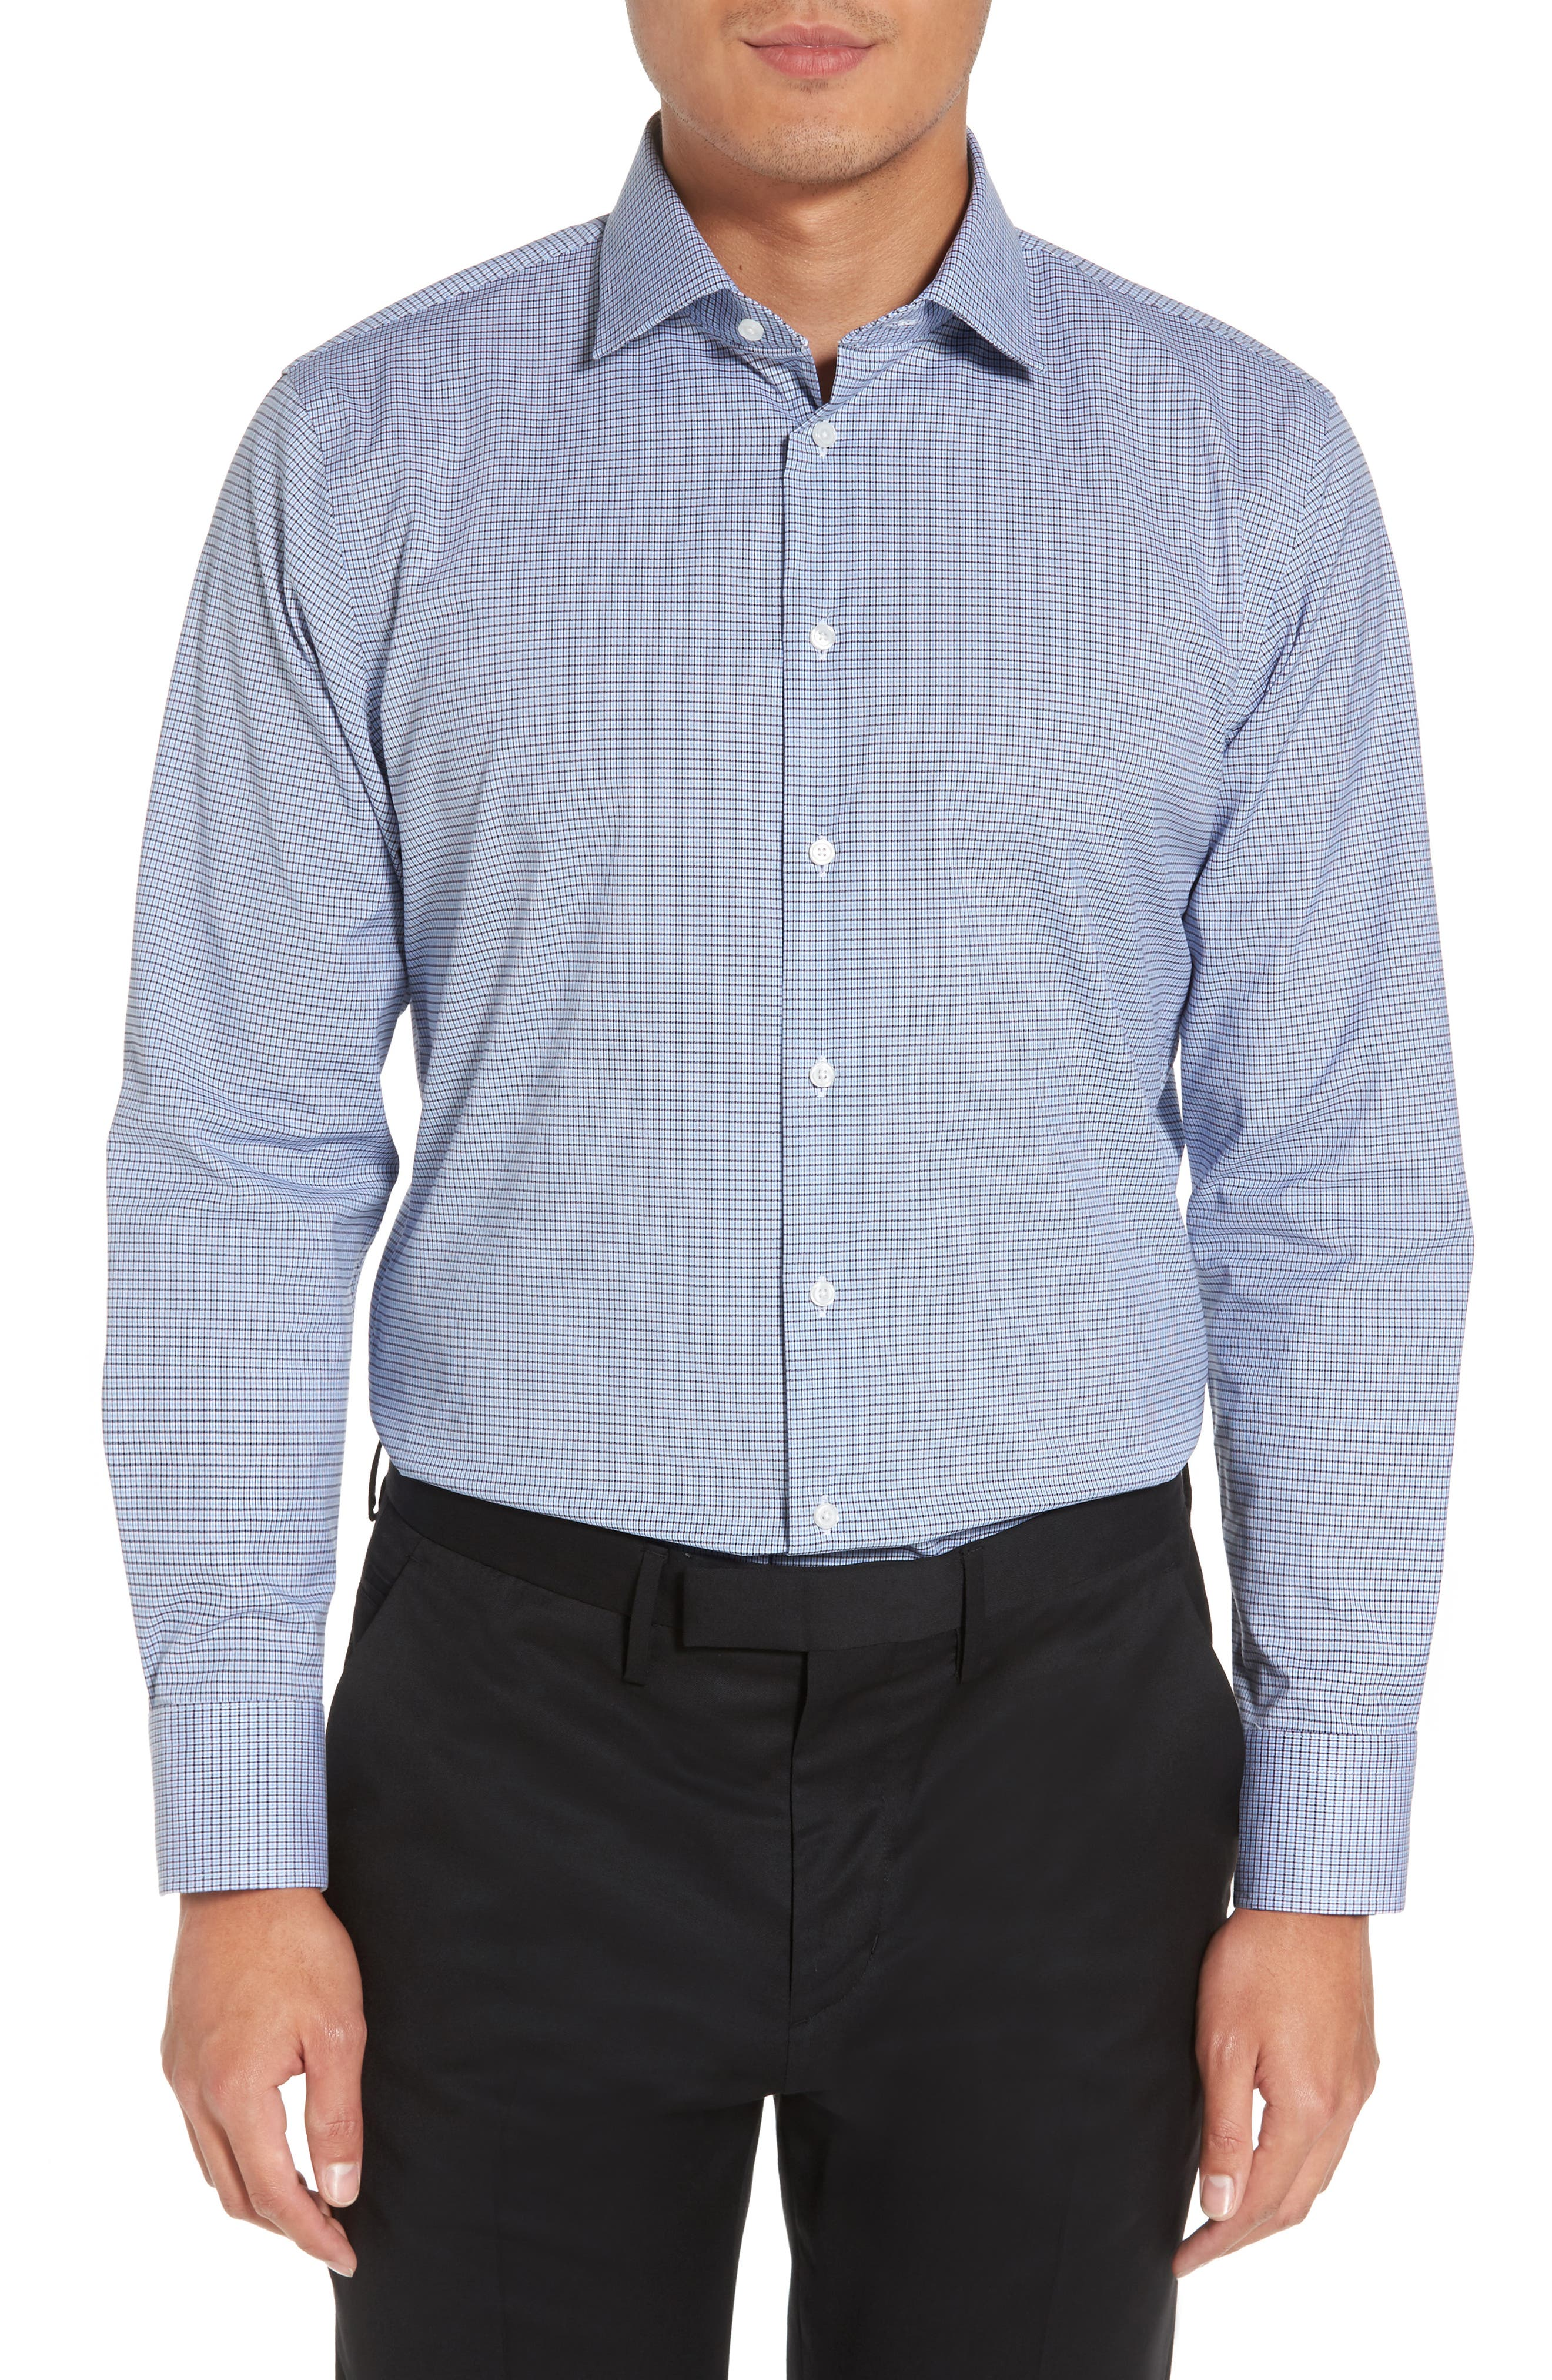 Alternate Image 2  - Calibrate Trim Fit Non-Iron Check Stretch Dress Shirt